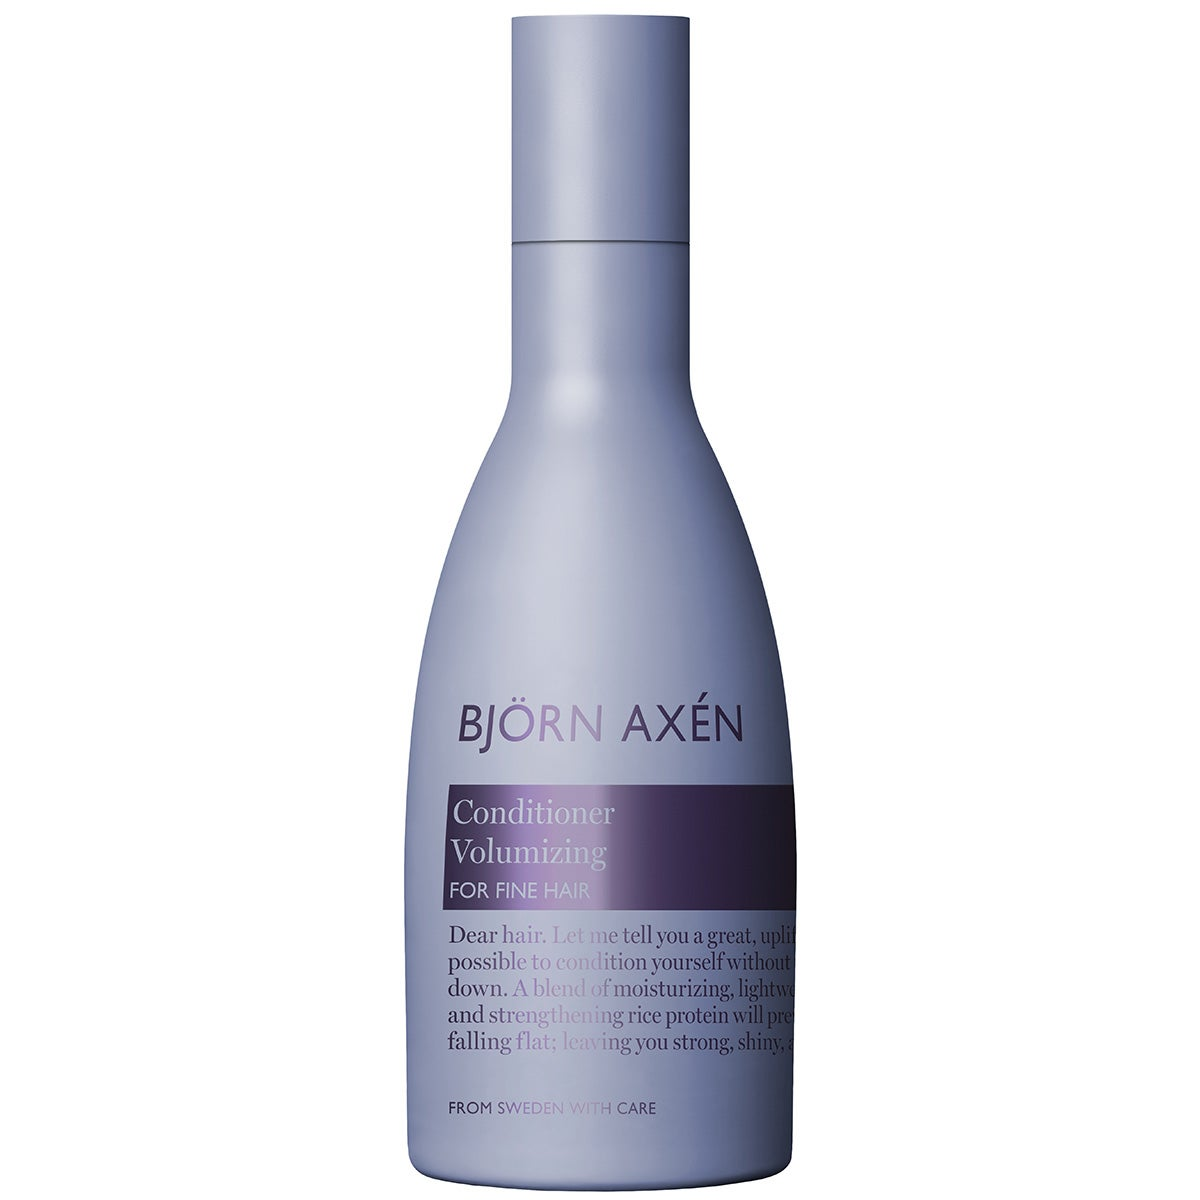 Björn Axén Volumizing Lightweight Conditioner